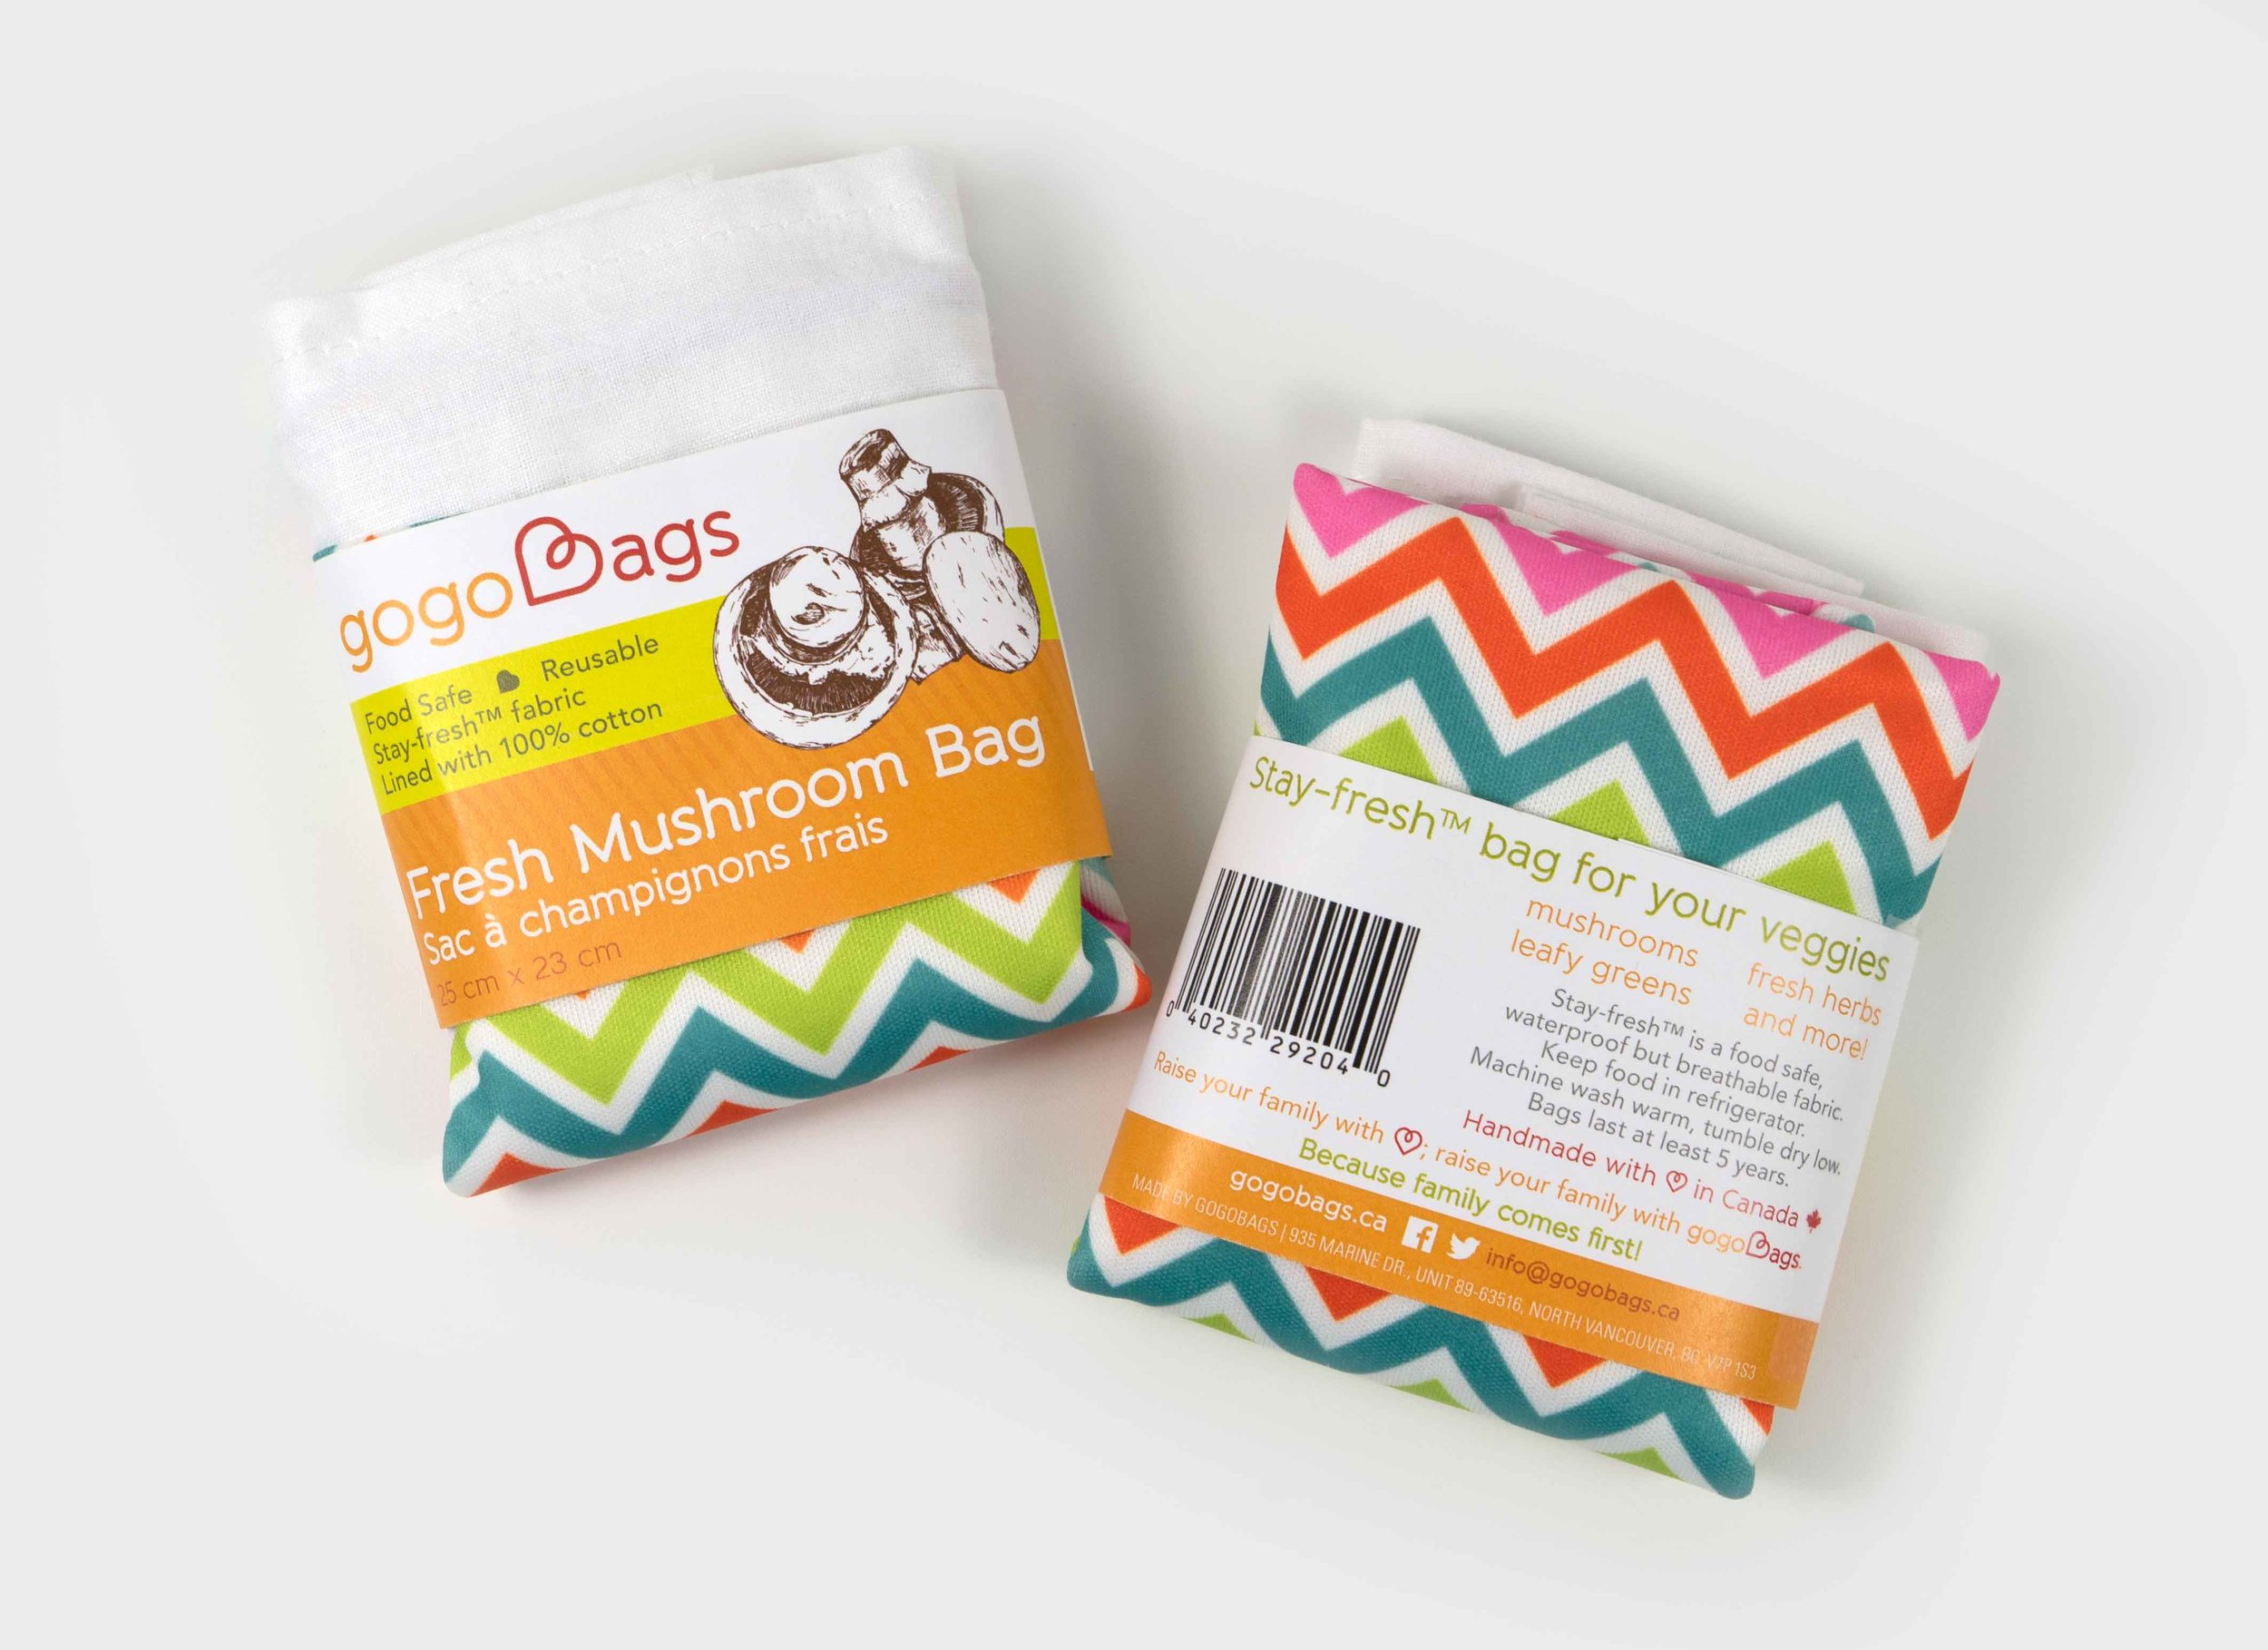 gogoBags fresh bags wrap packaging design